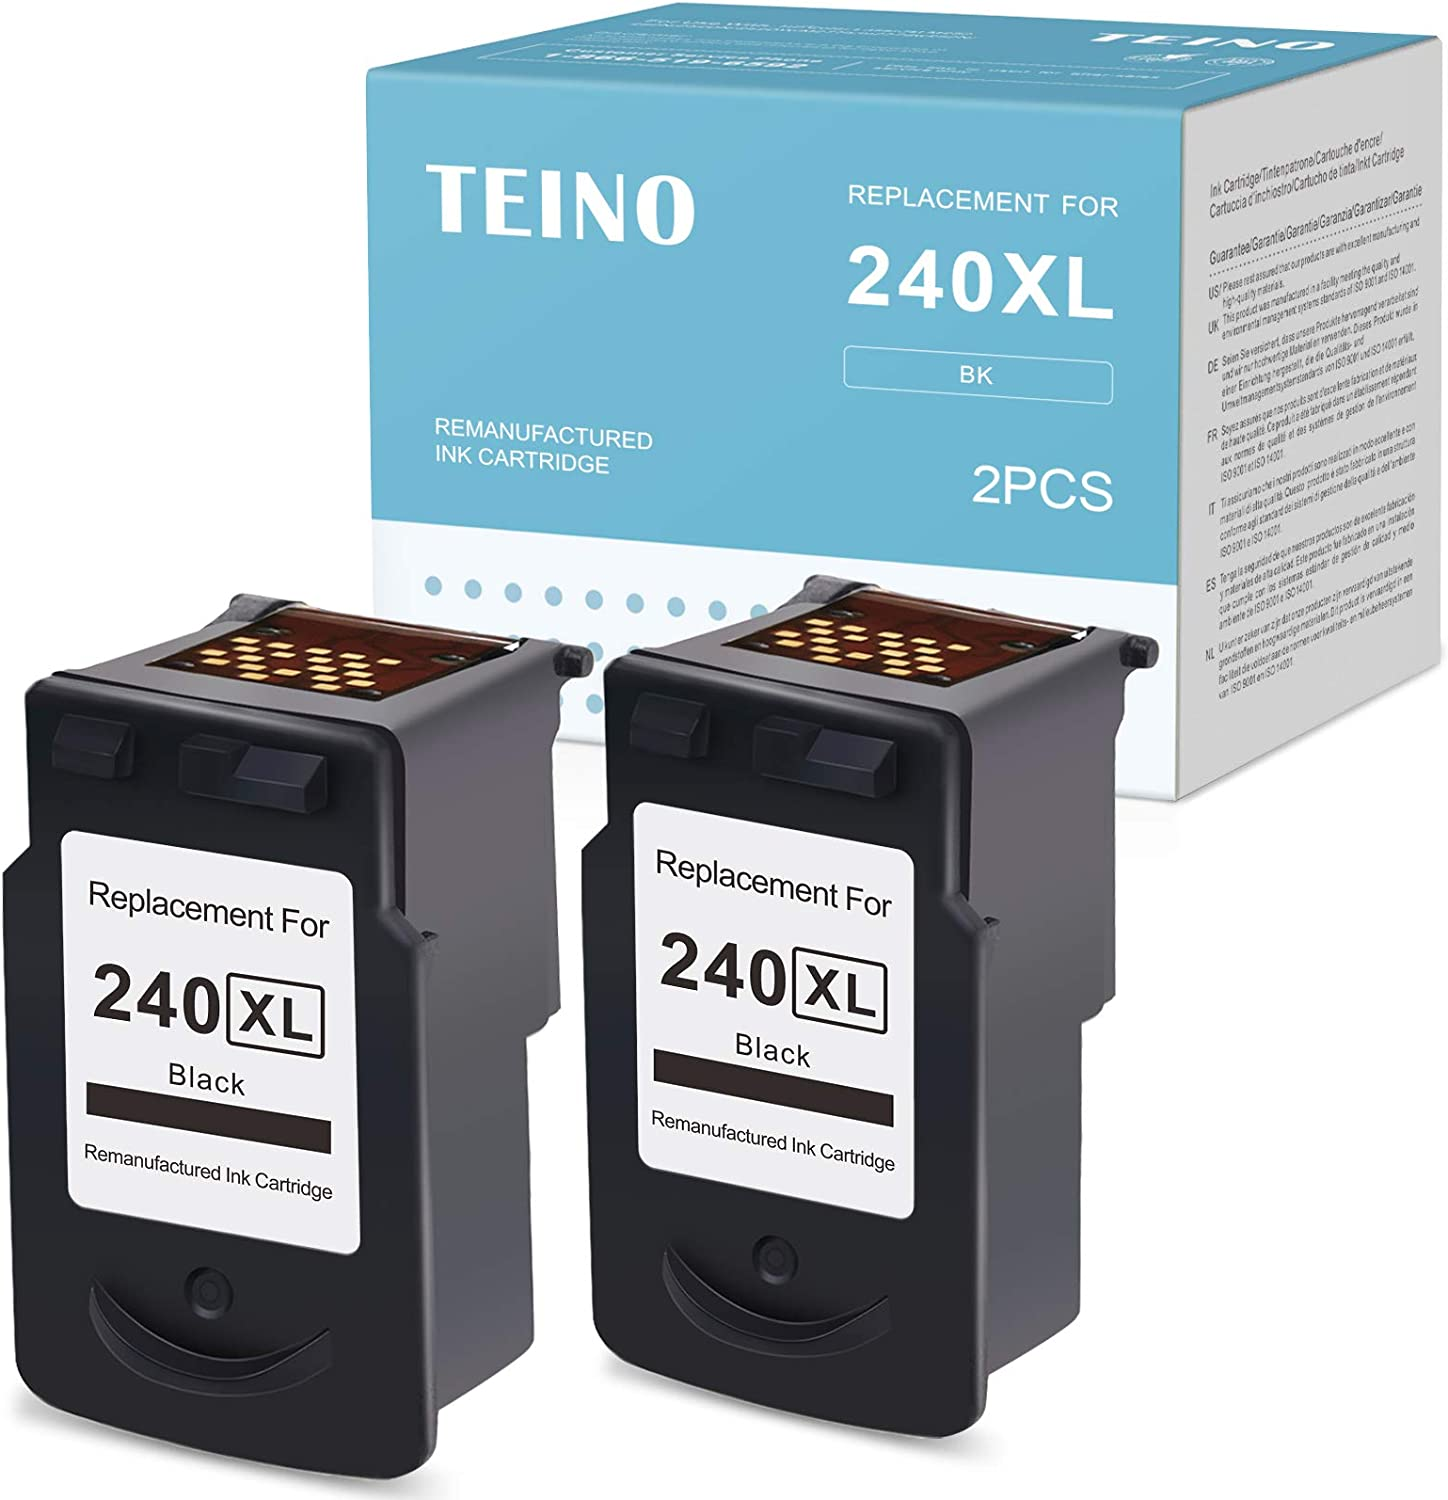 TEINO Remanufactured Ink Cartridges Replacement for Canon PG-240XL 240XL 240 use with Canon PIXMA TS5120 MG3620 MX532 MG3520 MX452 MX472 MX432 MG2120 MG3222 MG3220 MG3122 MX479 MX512 (Black, 2-Pack)